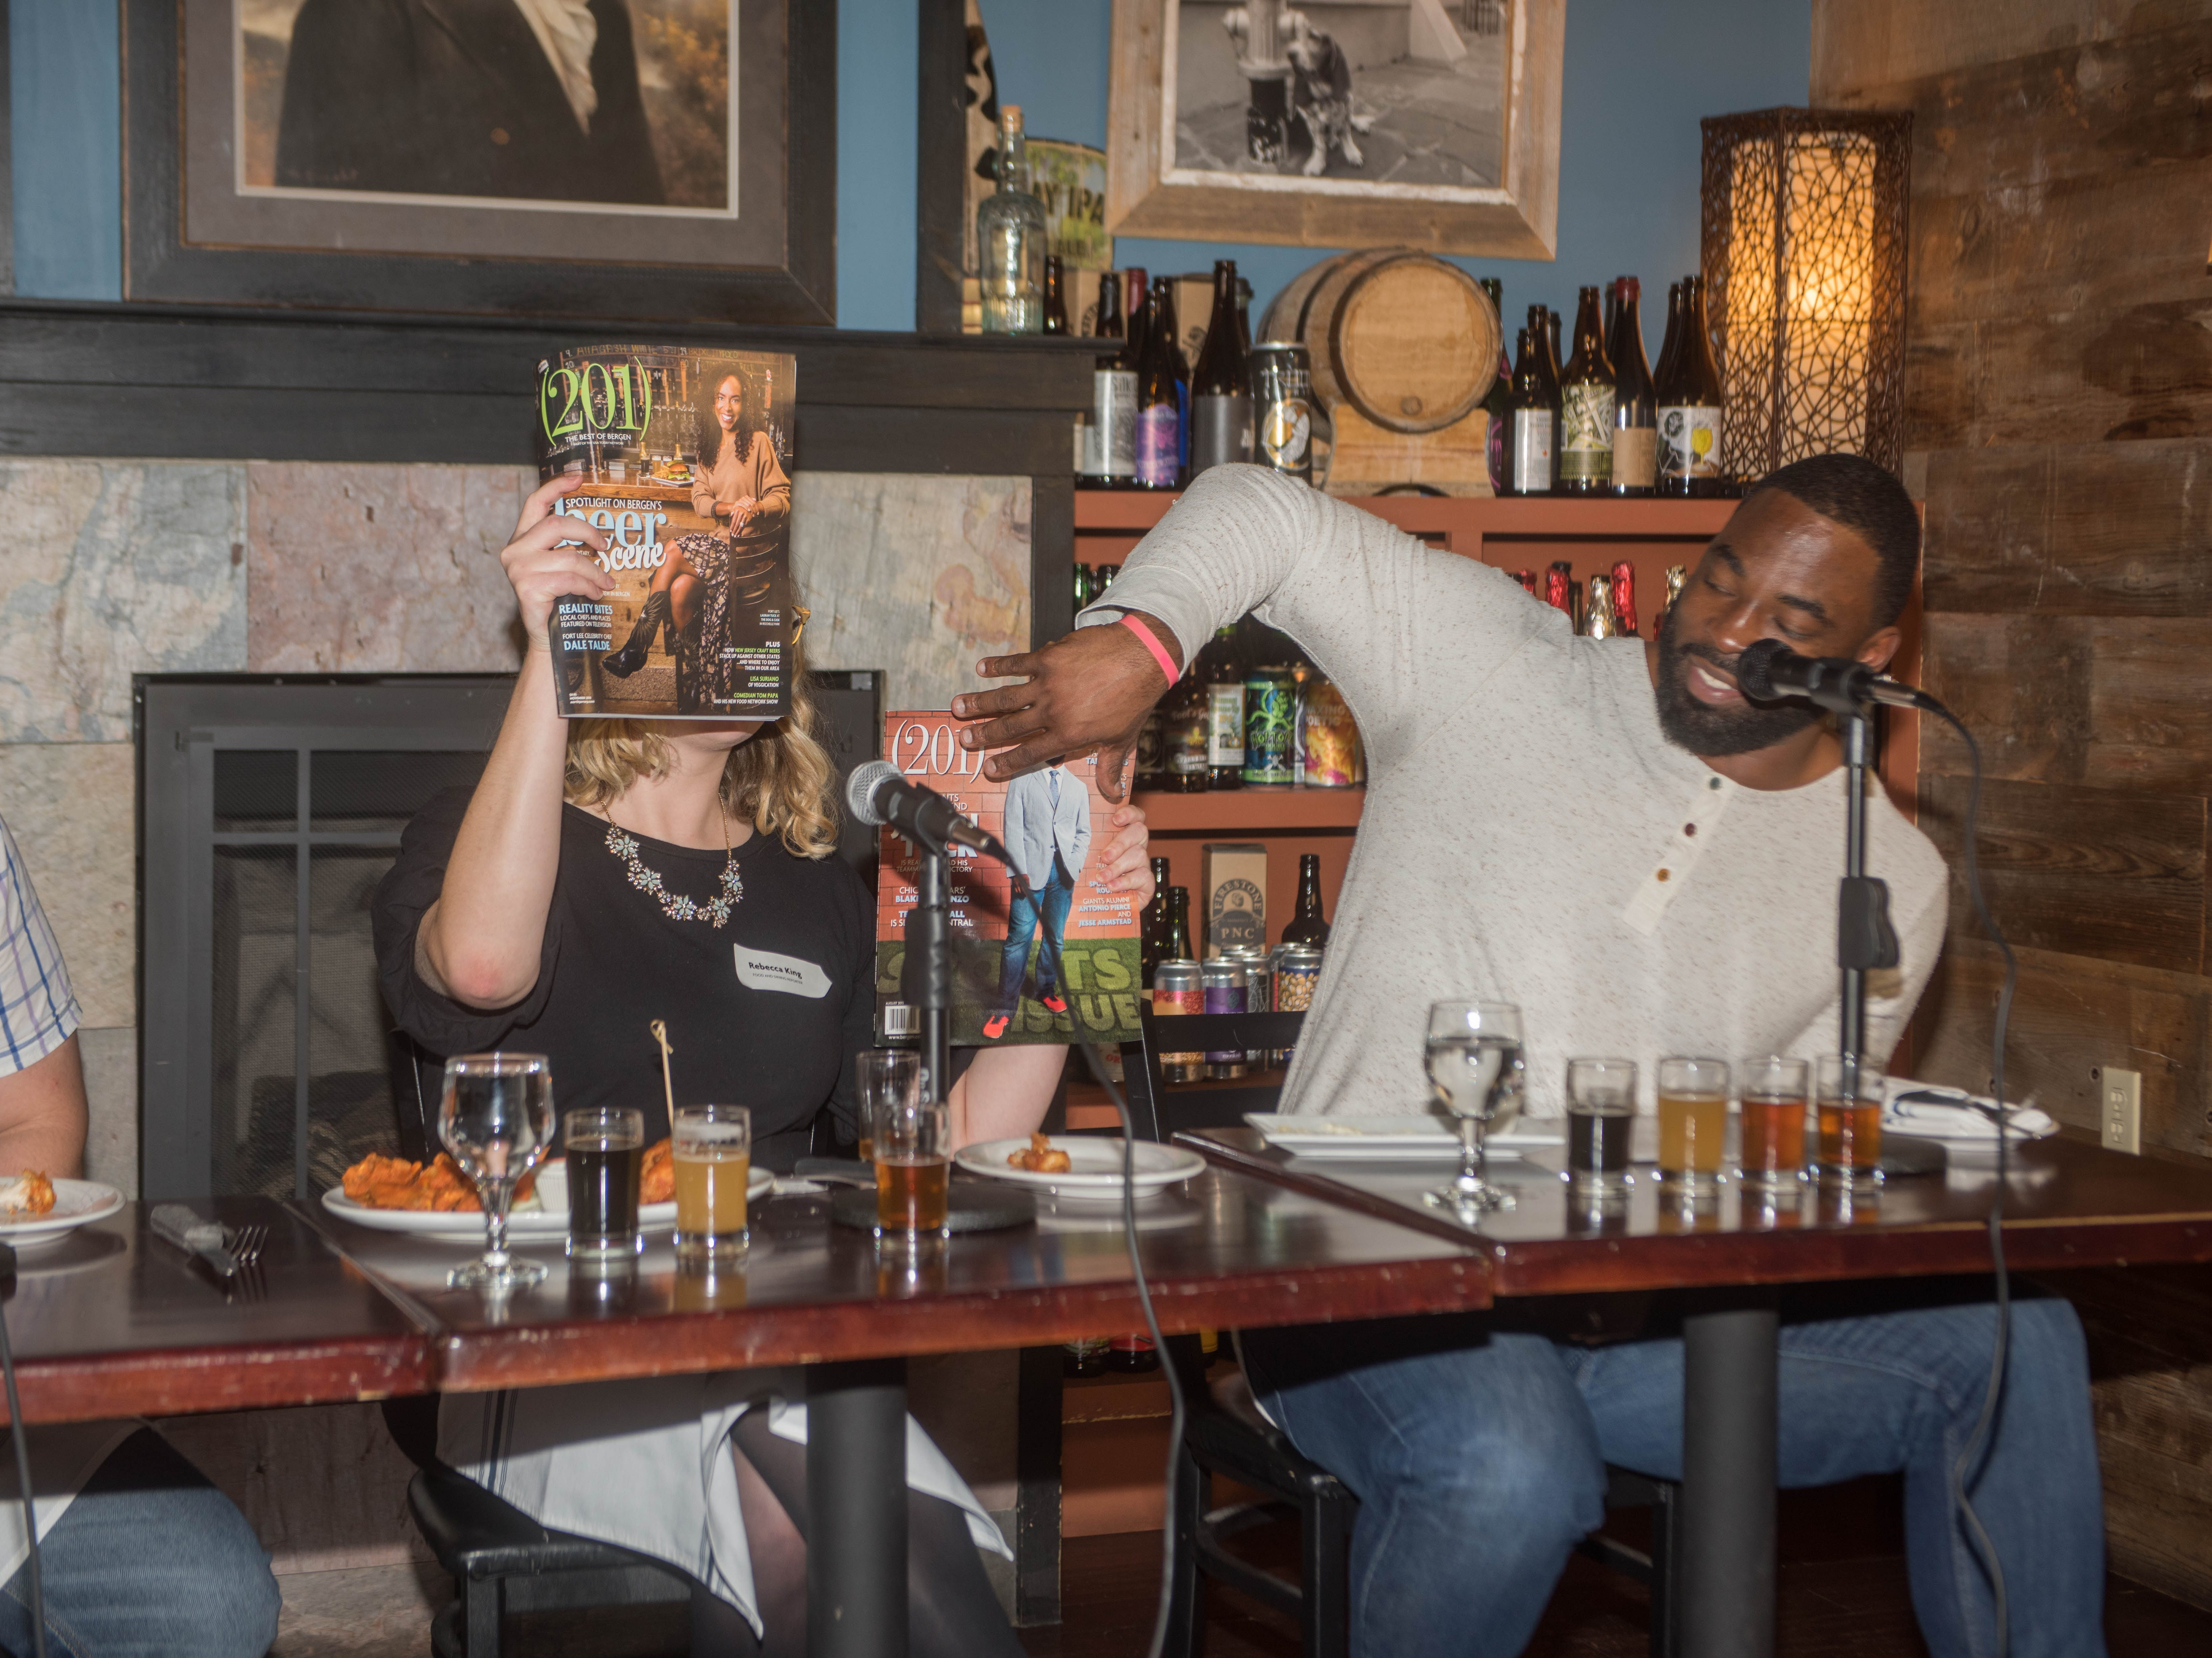 Rebecca King and Justin Tuck. (201) Magazine and NorthJersey.com held Taste Test Tuesday at he Dog and Cask in Rochelle Park with this month's cover model, Lauran Tuck and former cover model and former NY Giant Justin Tuck. 11/13/2018